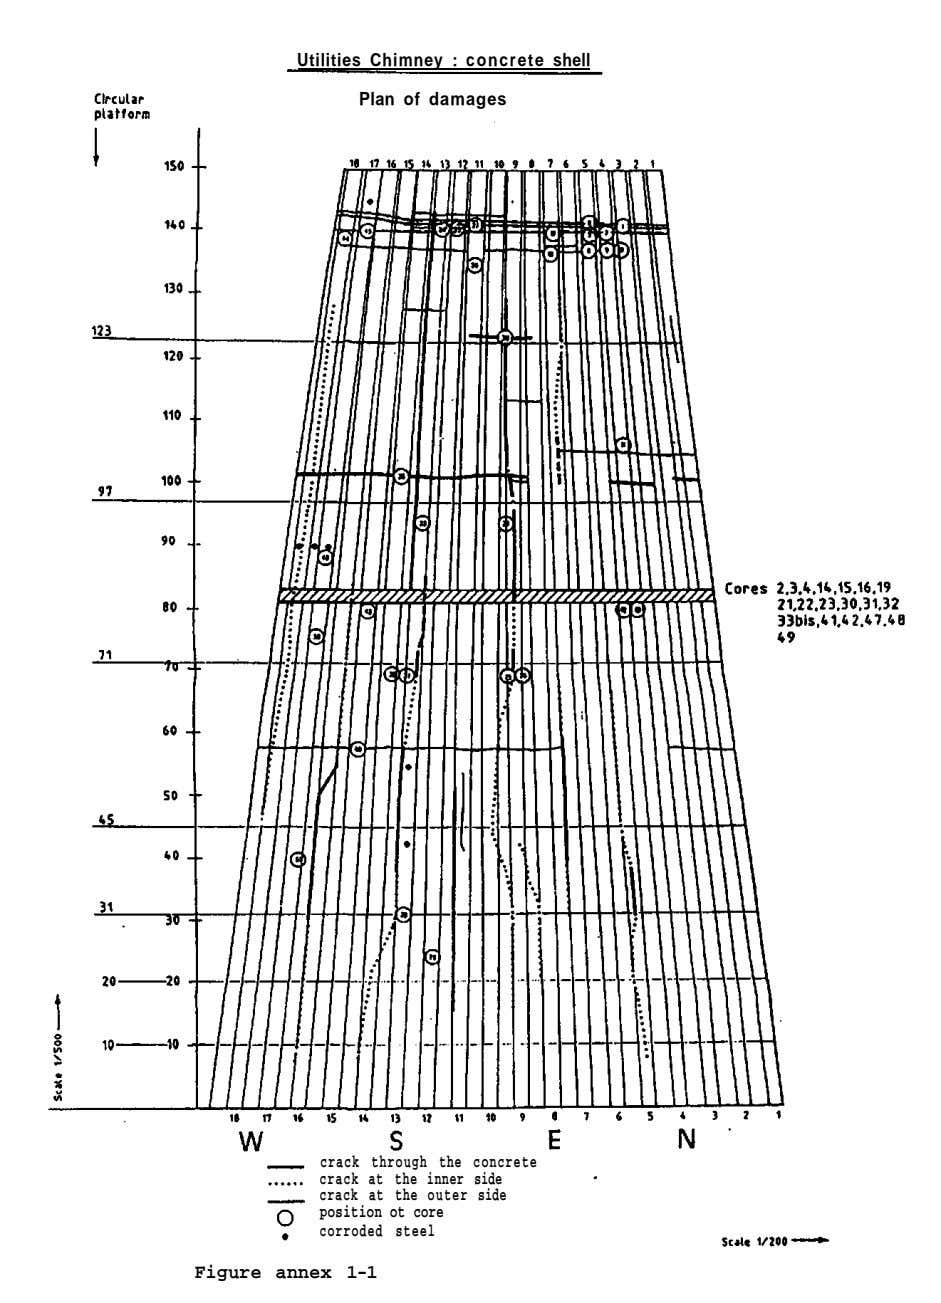 Utilities Chimney : concrete shell Plan of damages crack through the concrete crack at the